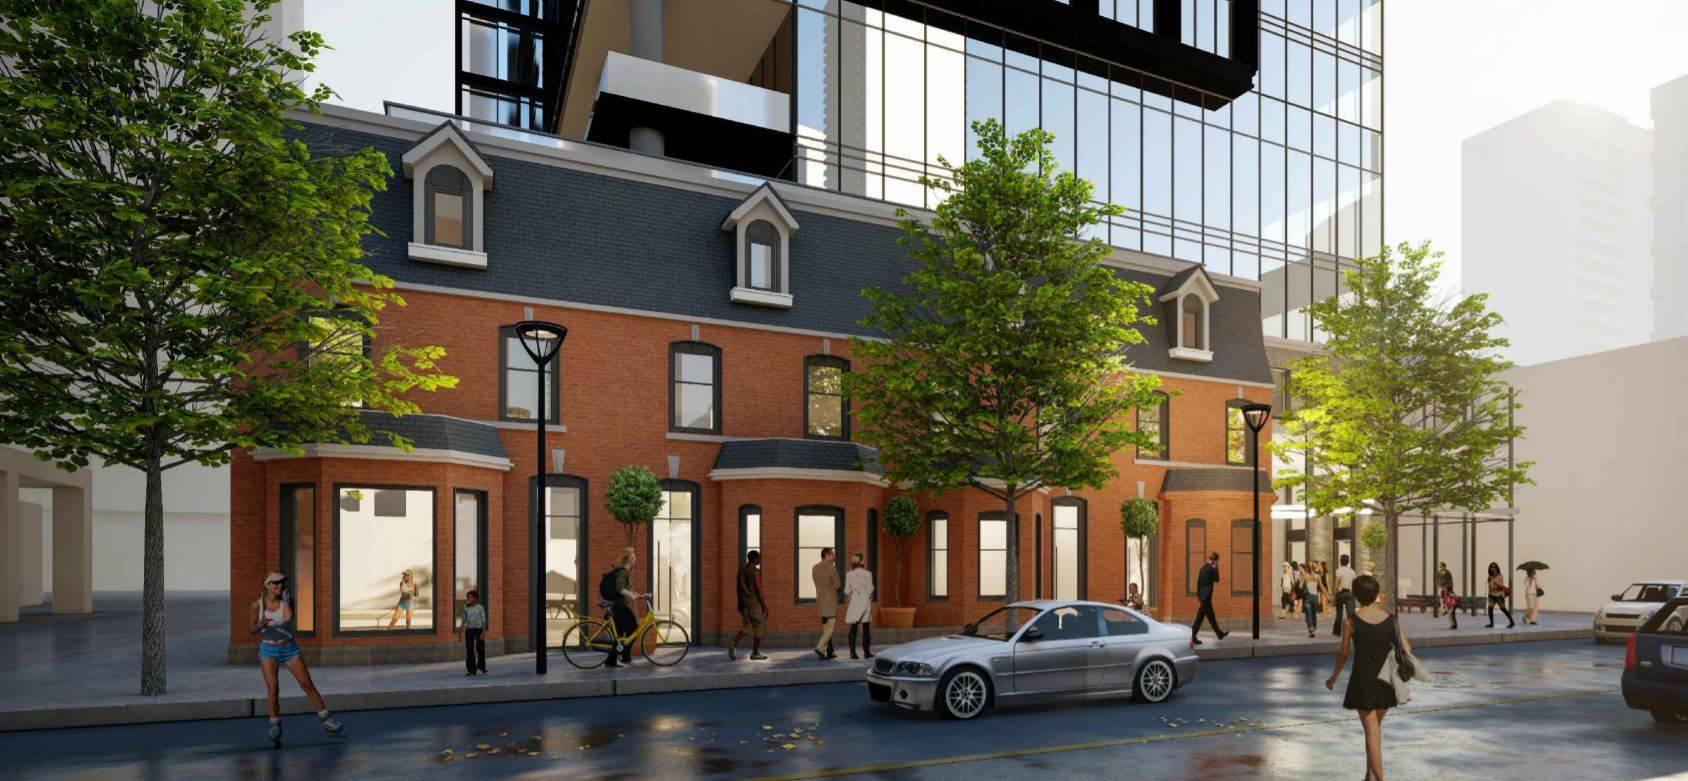 2020_08_21_01_08_26_8wellesleycondos_rendering3